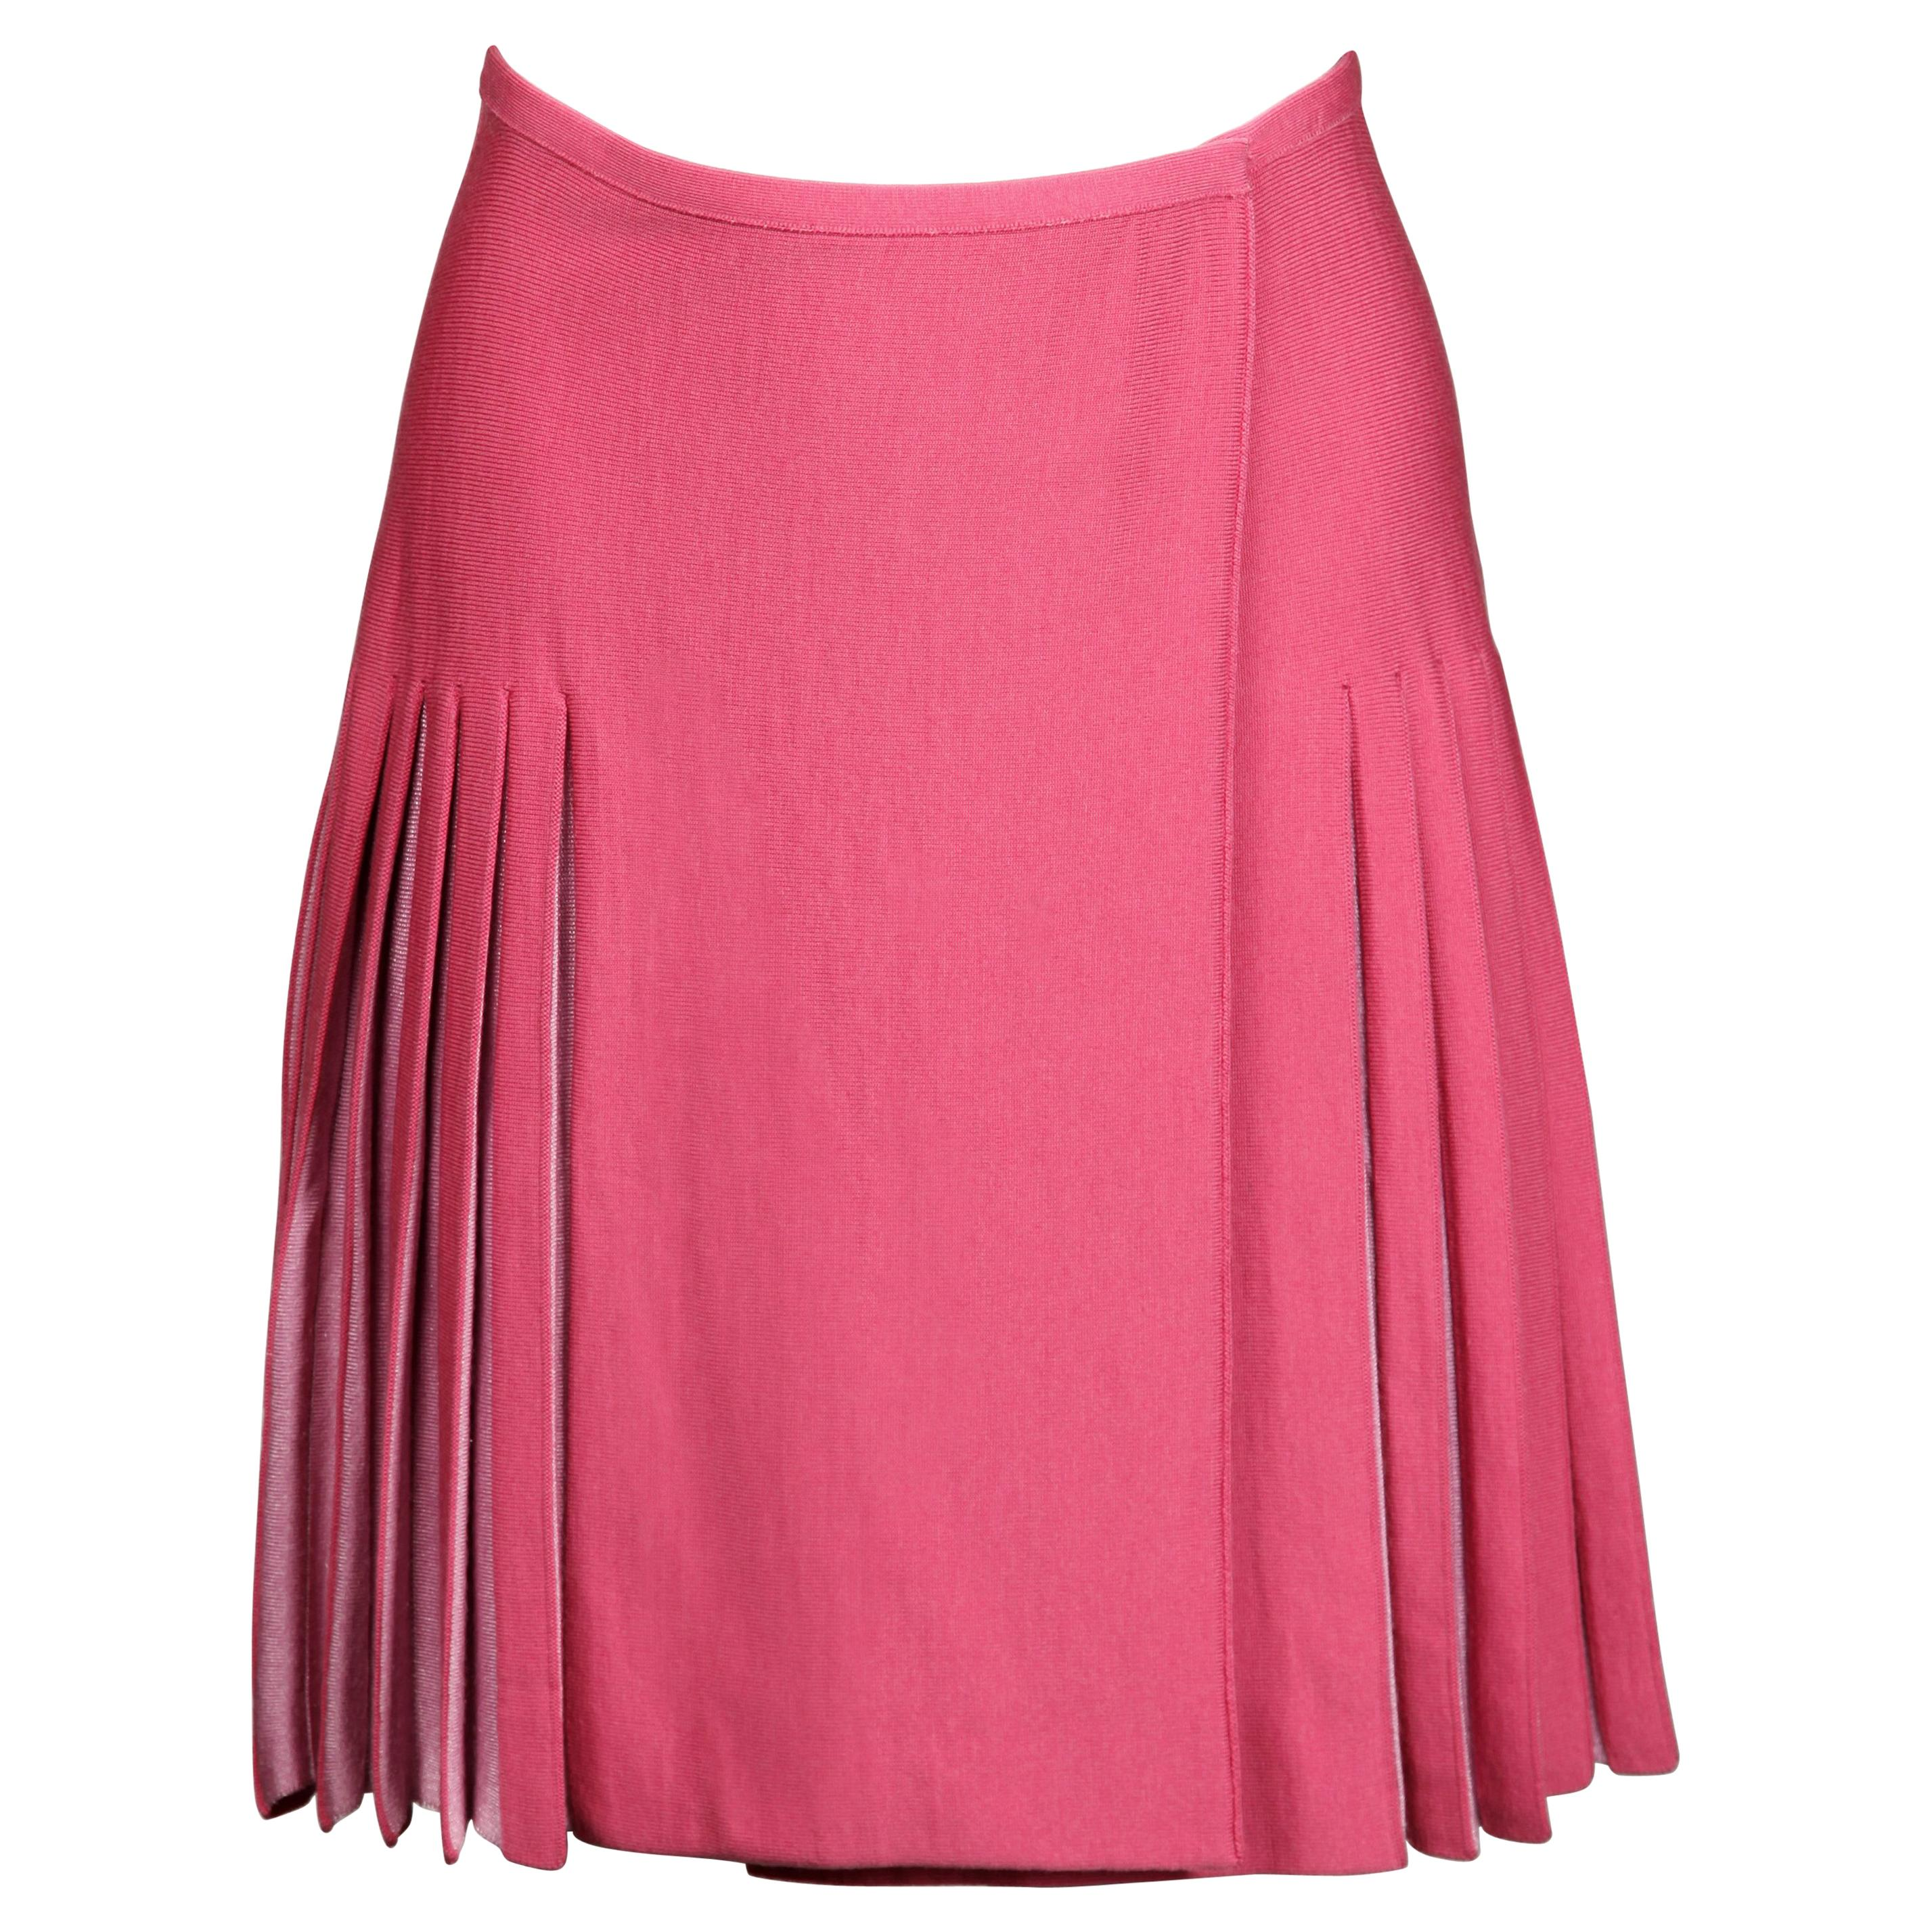 Alaia Vintage Two-Tone Pink Pleated Knit Sweater Mini Skirt